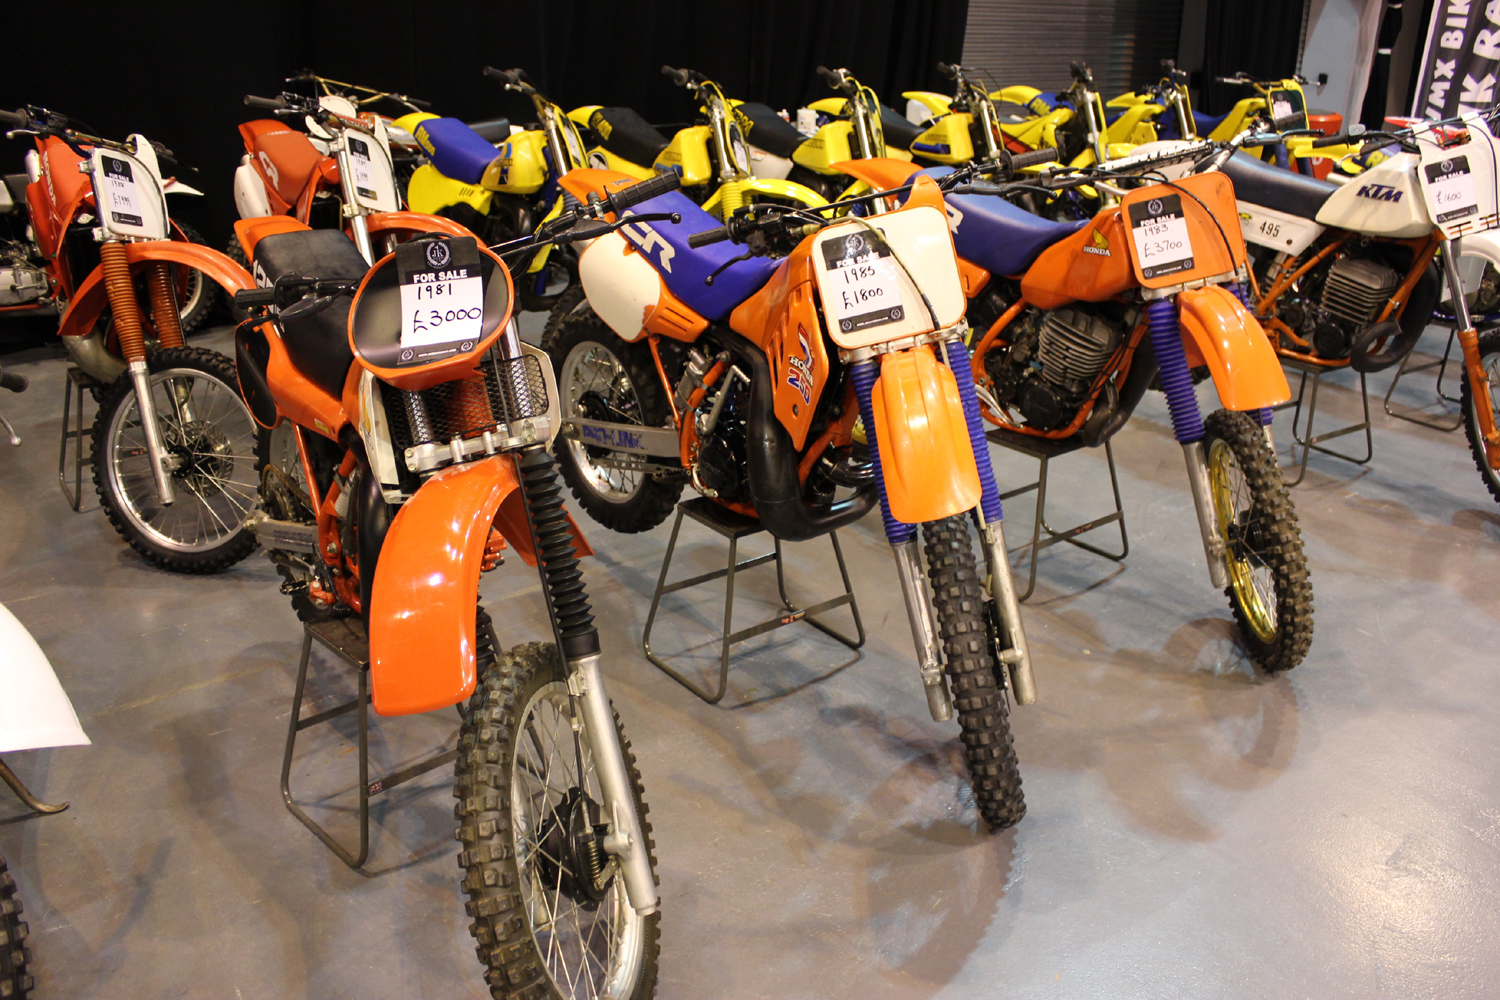 classicdirtbikerider.com-photo by Mr J-2015 Telford classic dirt bike show-LINE UP OF HONDA CR EVO BIKES FOR SALE